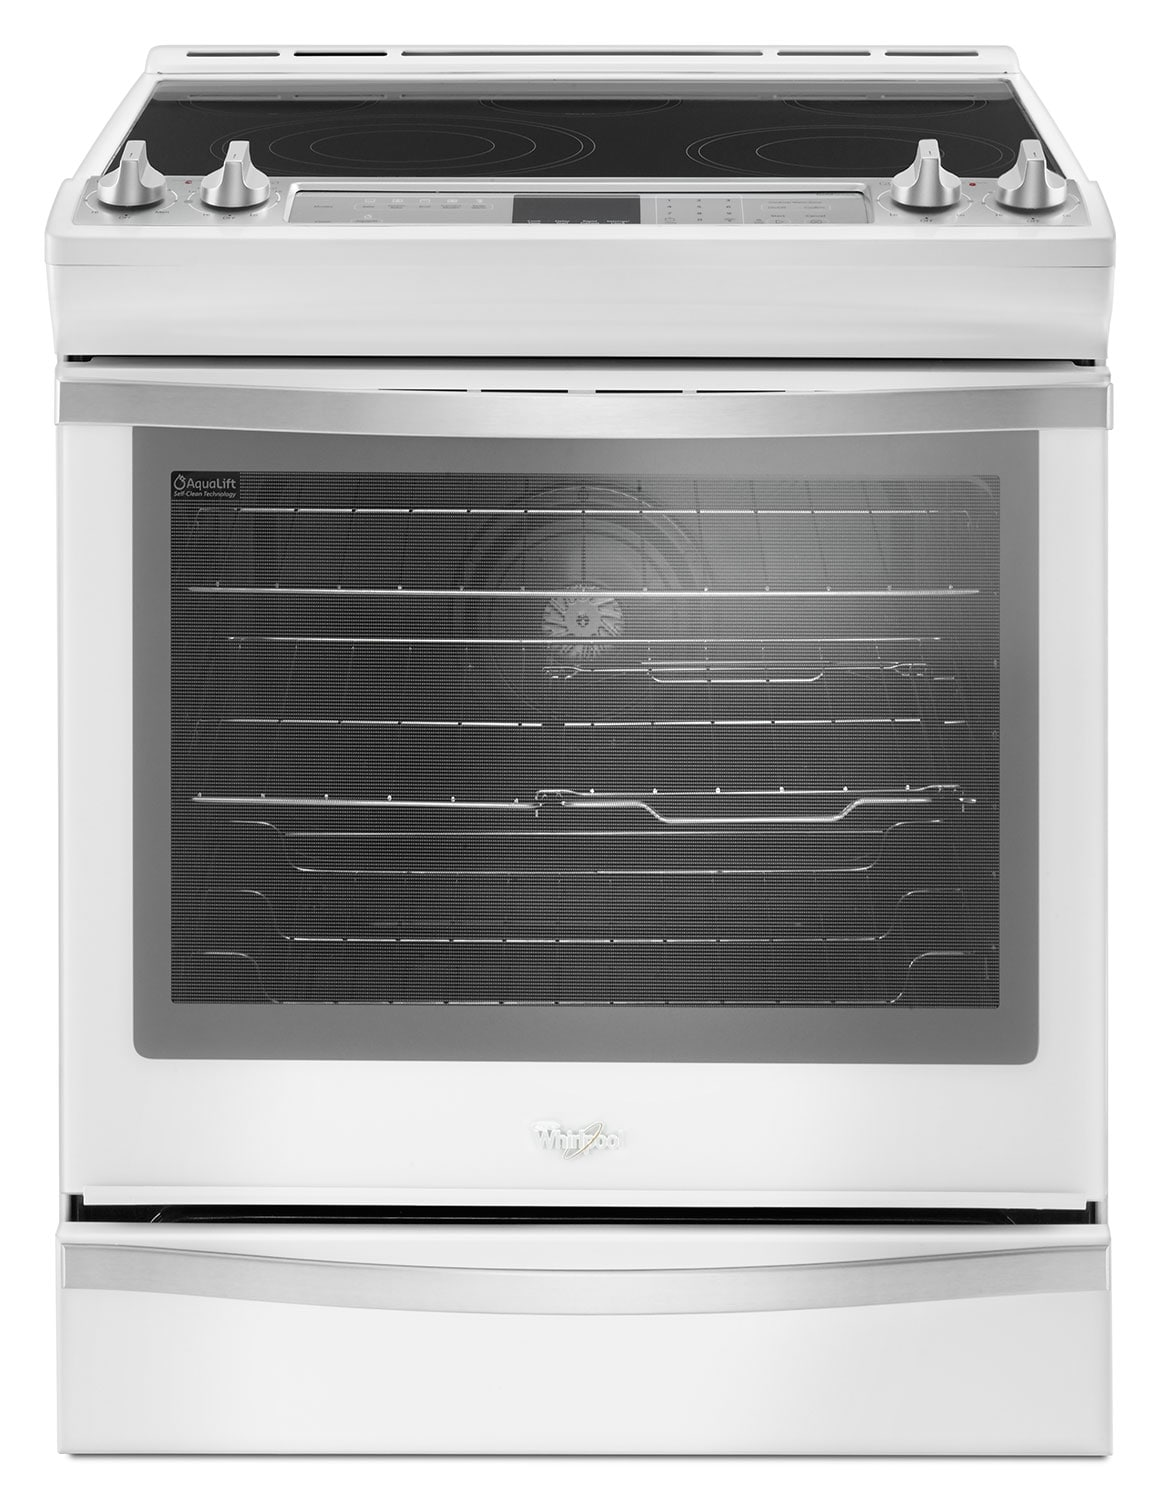 Whirlpool 6.4 Cu. Ft. Slide-In Electric Range – YWEE745H0FH